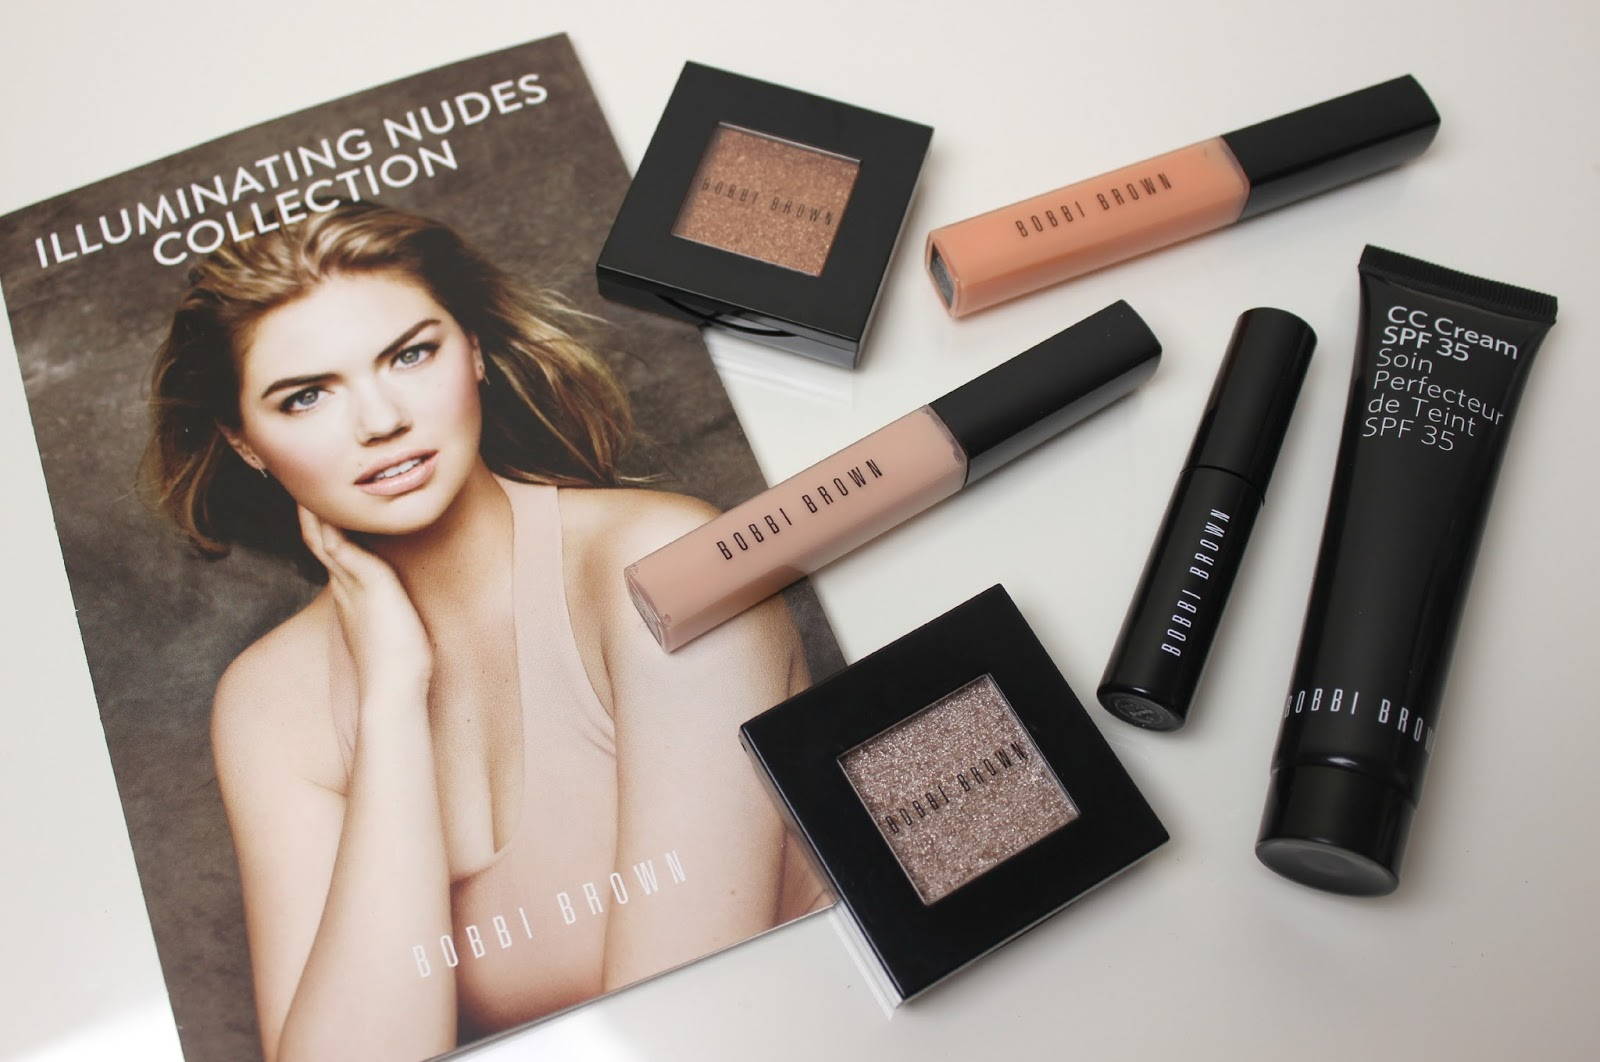 A picture of Bobbi Brown Illuminating Nudes Collection